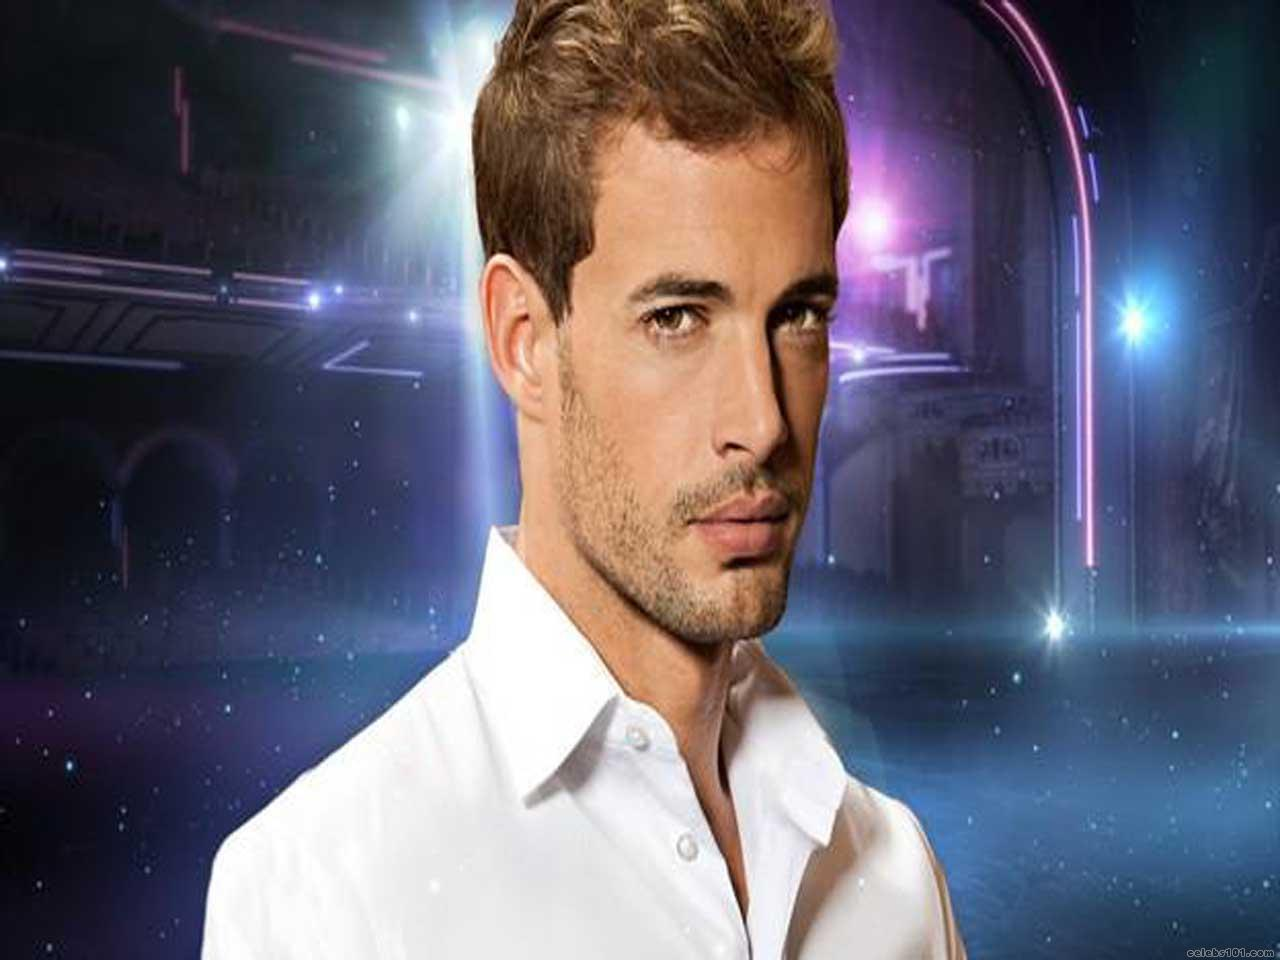 William Levy High quality wallpaper size 1280x960 of 1280x960